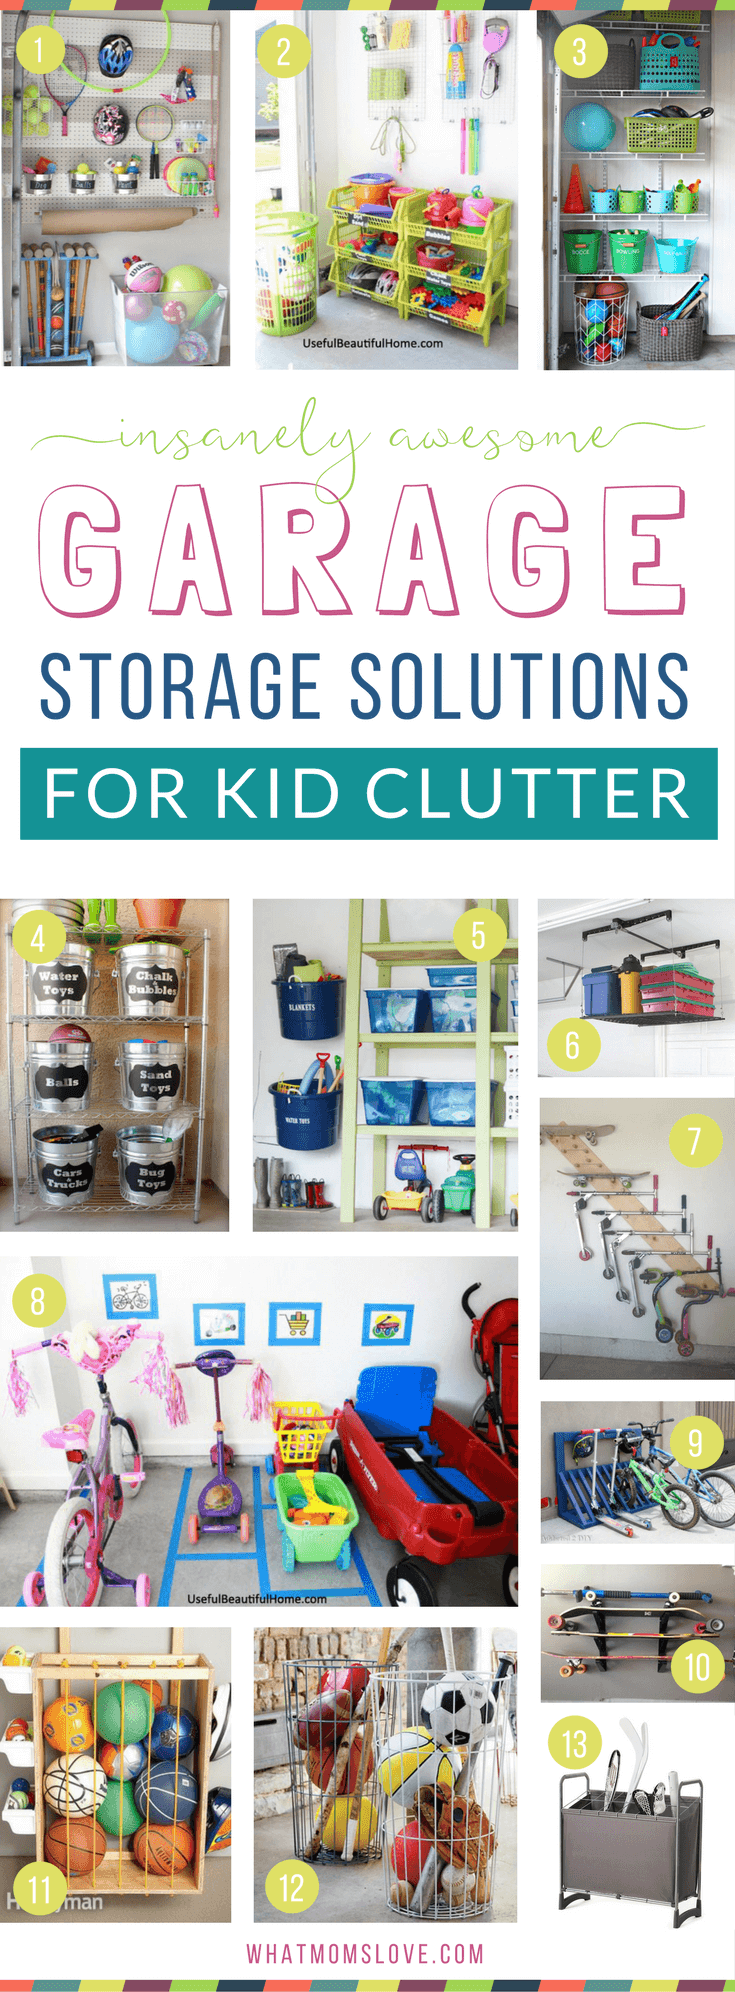 How To Organize Your Garage Eliminate Toy Clutter Diy Ideas Products Inspiration And Tips Create More Storage For Kids Stuff